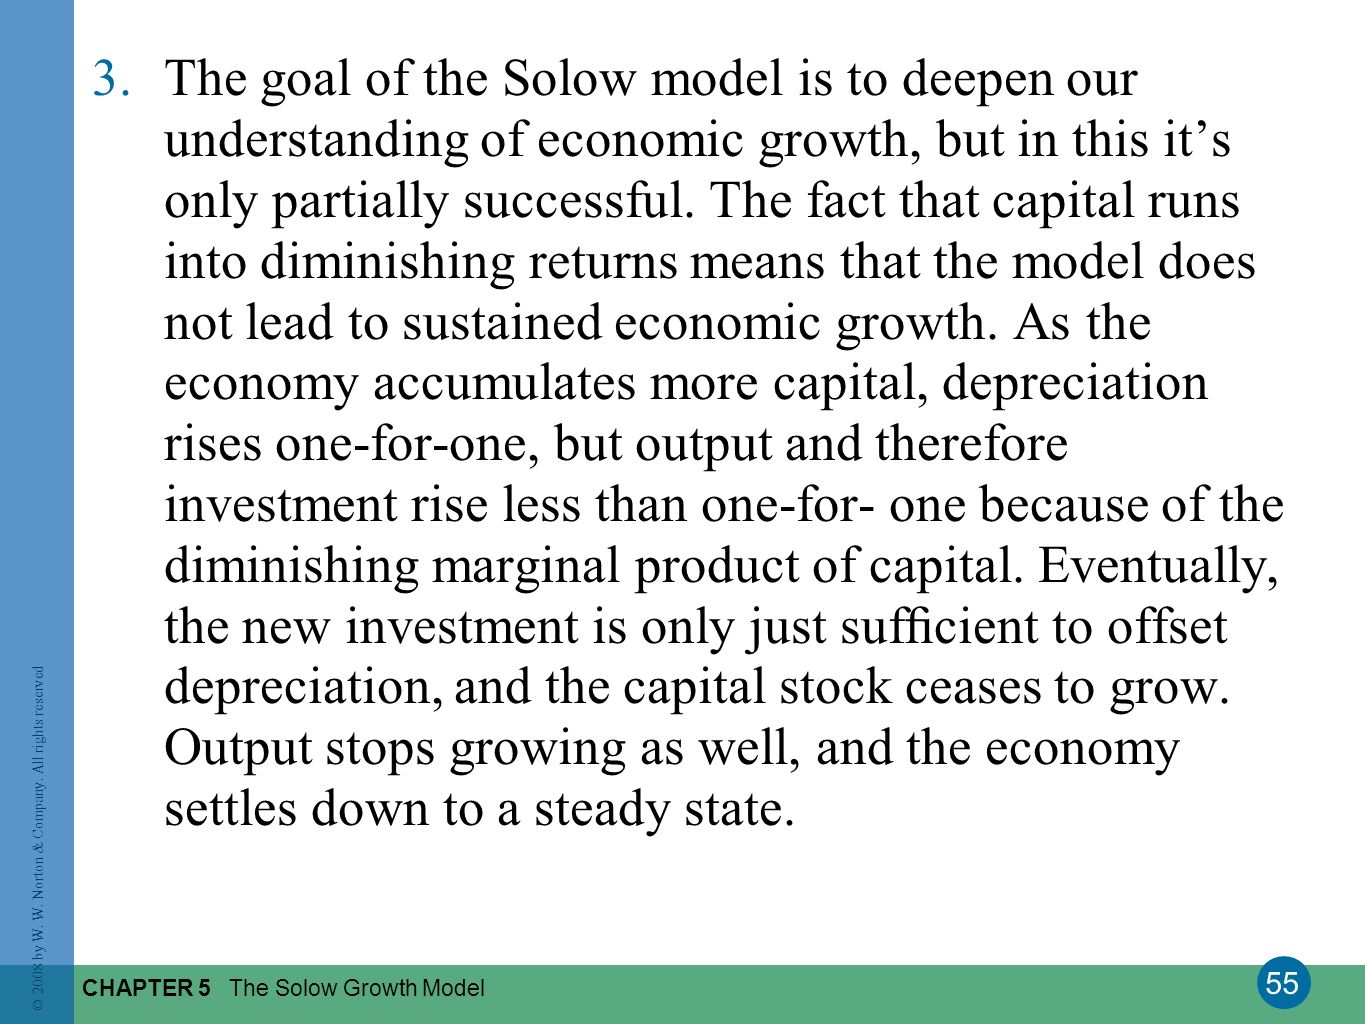 The goal of the Solow model is to deepen our understanding of economic growth, but in this it's only partially successful. The fact that capital runs into diminishing returns means that the model does not lead to sustained economic growth. As the economy accumulates more capital, depreciation rises one-for-one, but output and therefore investment rise less than one-for- one because of the diminishing marginal product of capital. Eventually, the new investment is only just sufficient to offset depreciation, and the capital stock ceases to grow. Output stops growing as well, and the economy settles down to a steady state.